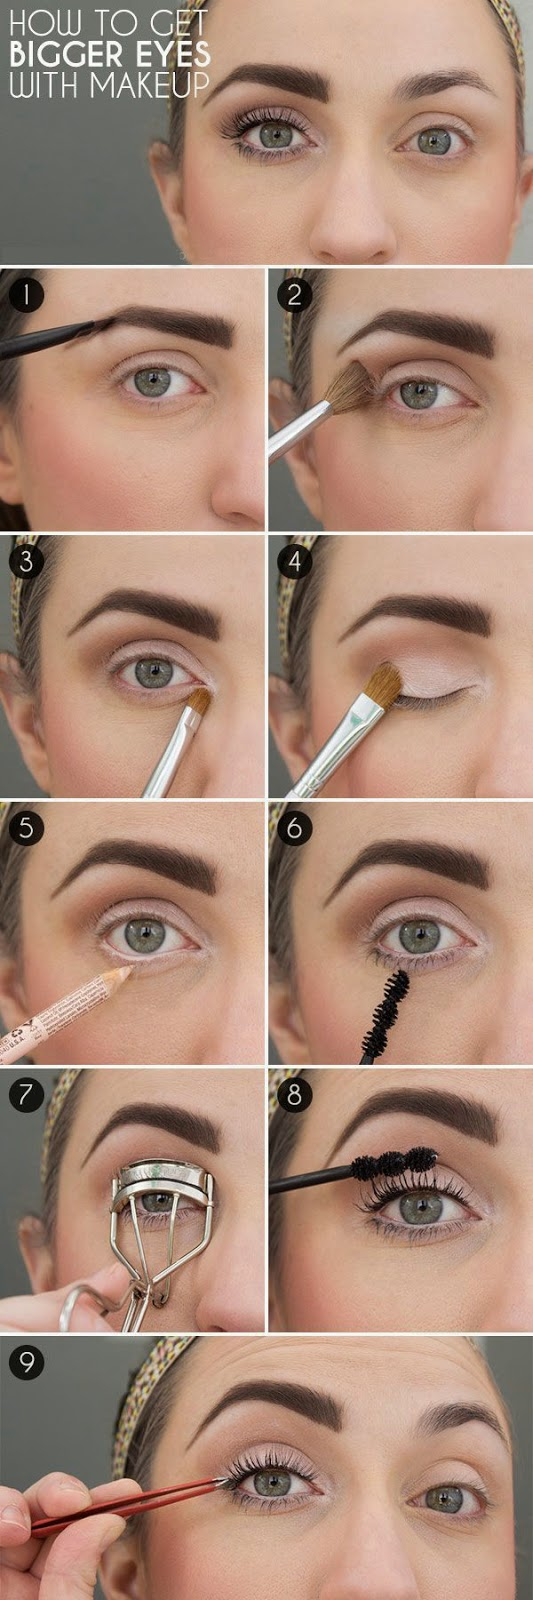 Step By Makeup For Big Eyes Anexa Market